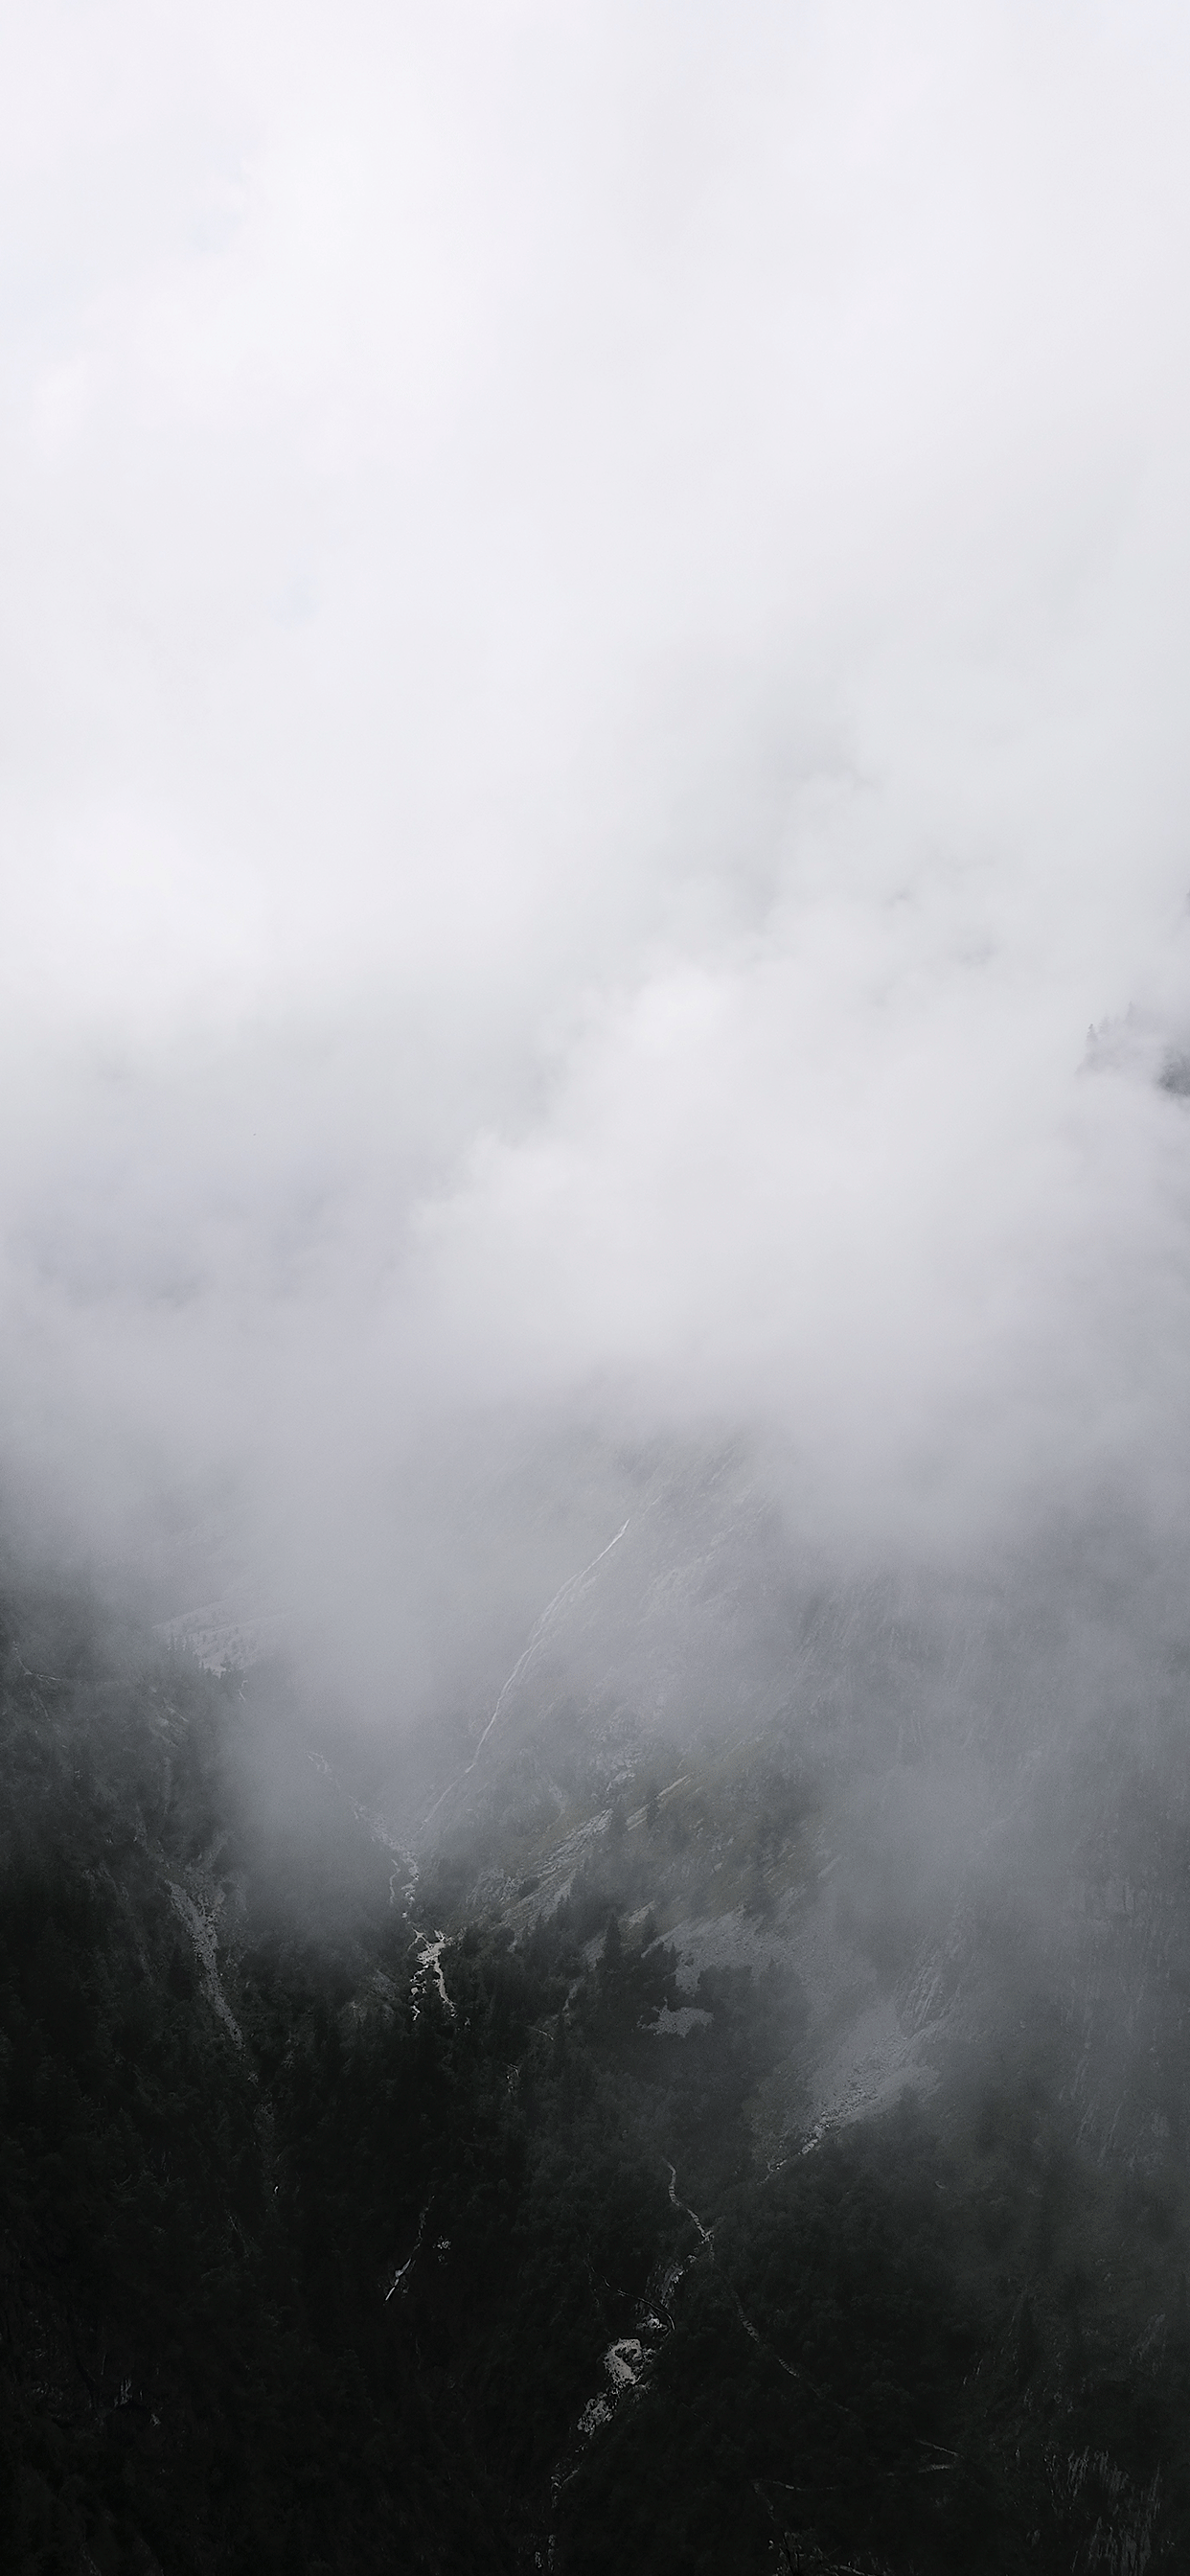 iPhone wallpapers zugspitze fog Fonds d'écran iPhone du 03/07/2019